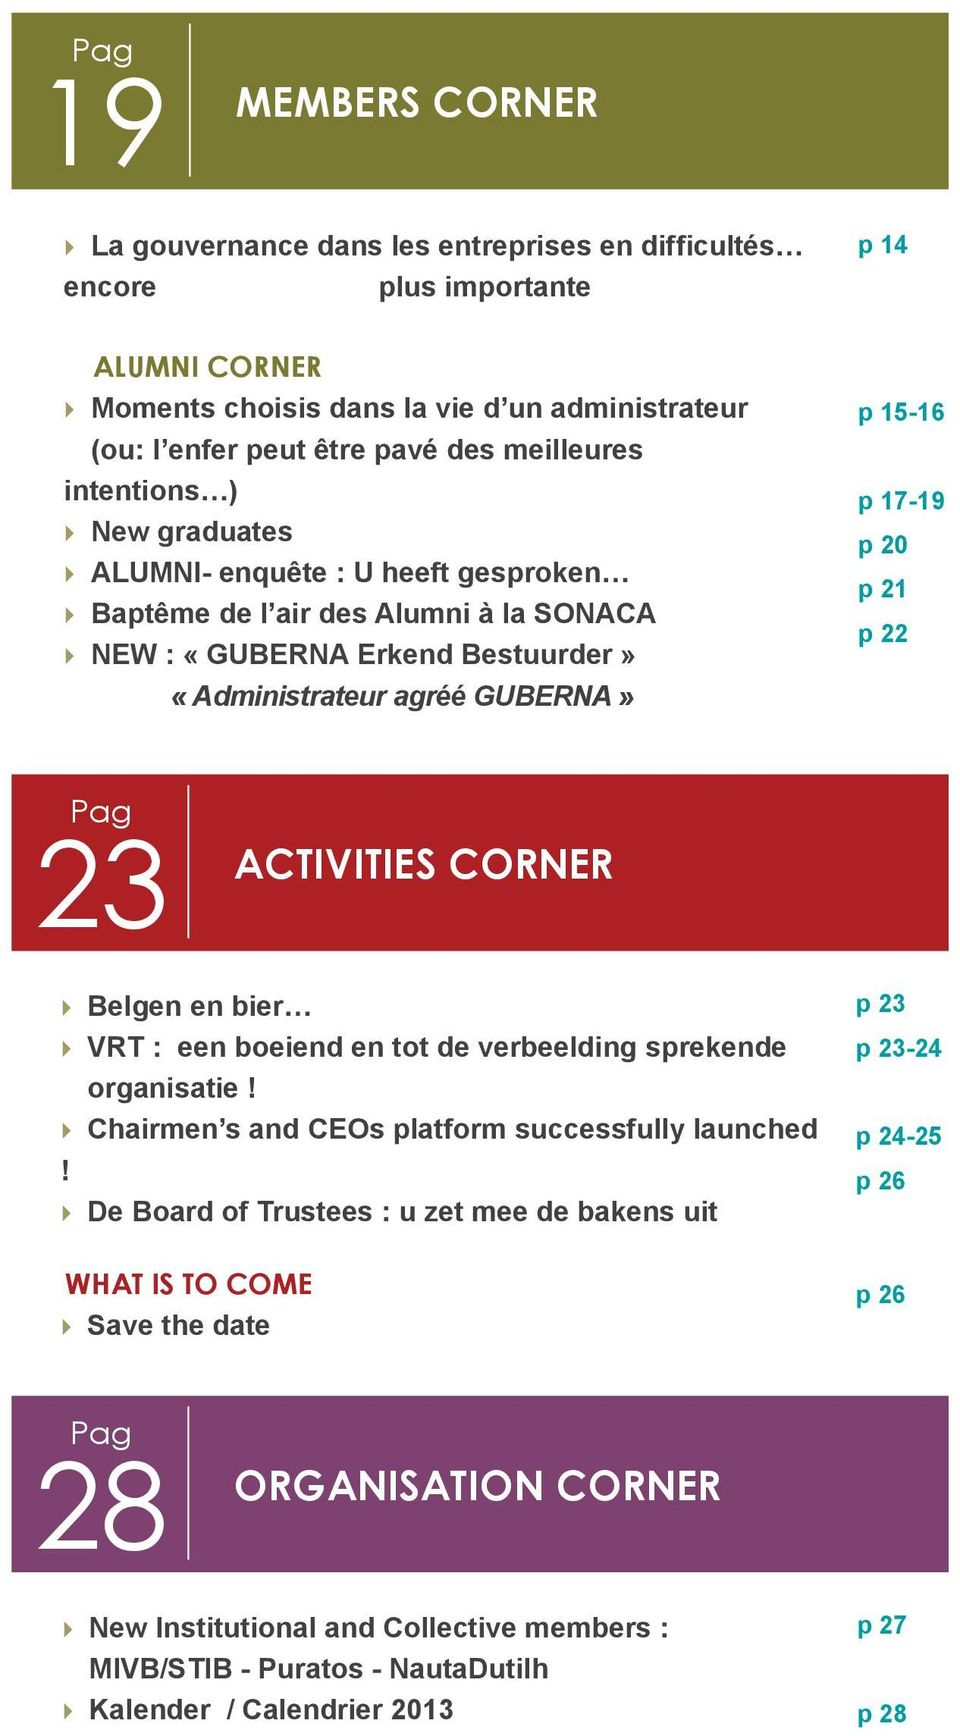 20 p 21 p 22 Pag 23 Activities corner Belgen en bier VRT : een boeiend en tot de verbeelding sprekende organisatie! Chairmen s and CEOs platform successfully launched!